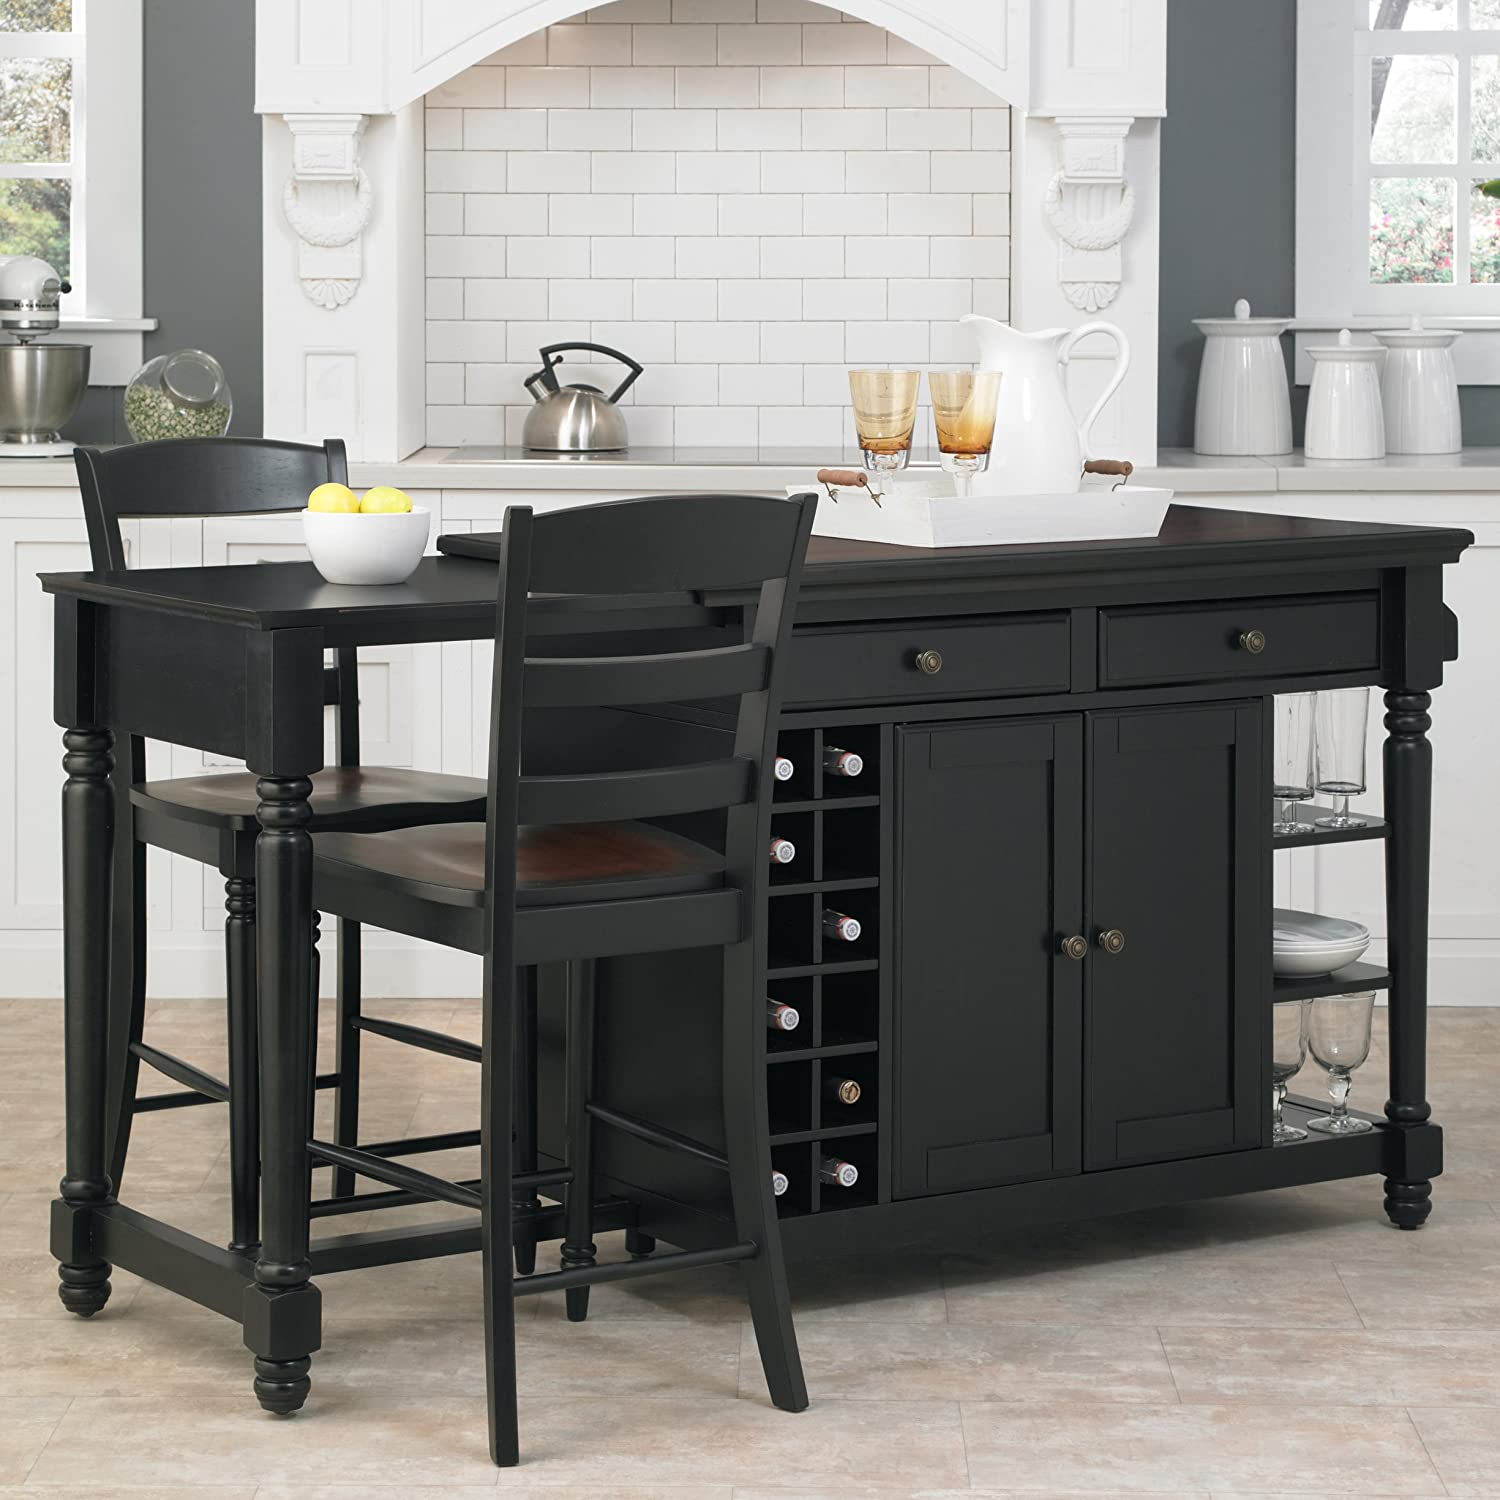 Amazon Home Styles Grand Torino Kitchen Island and 2 Stools